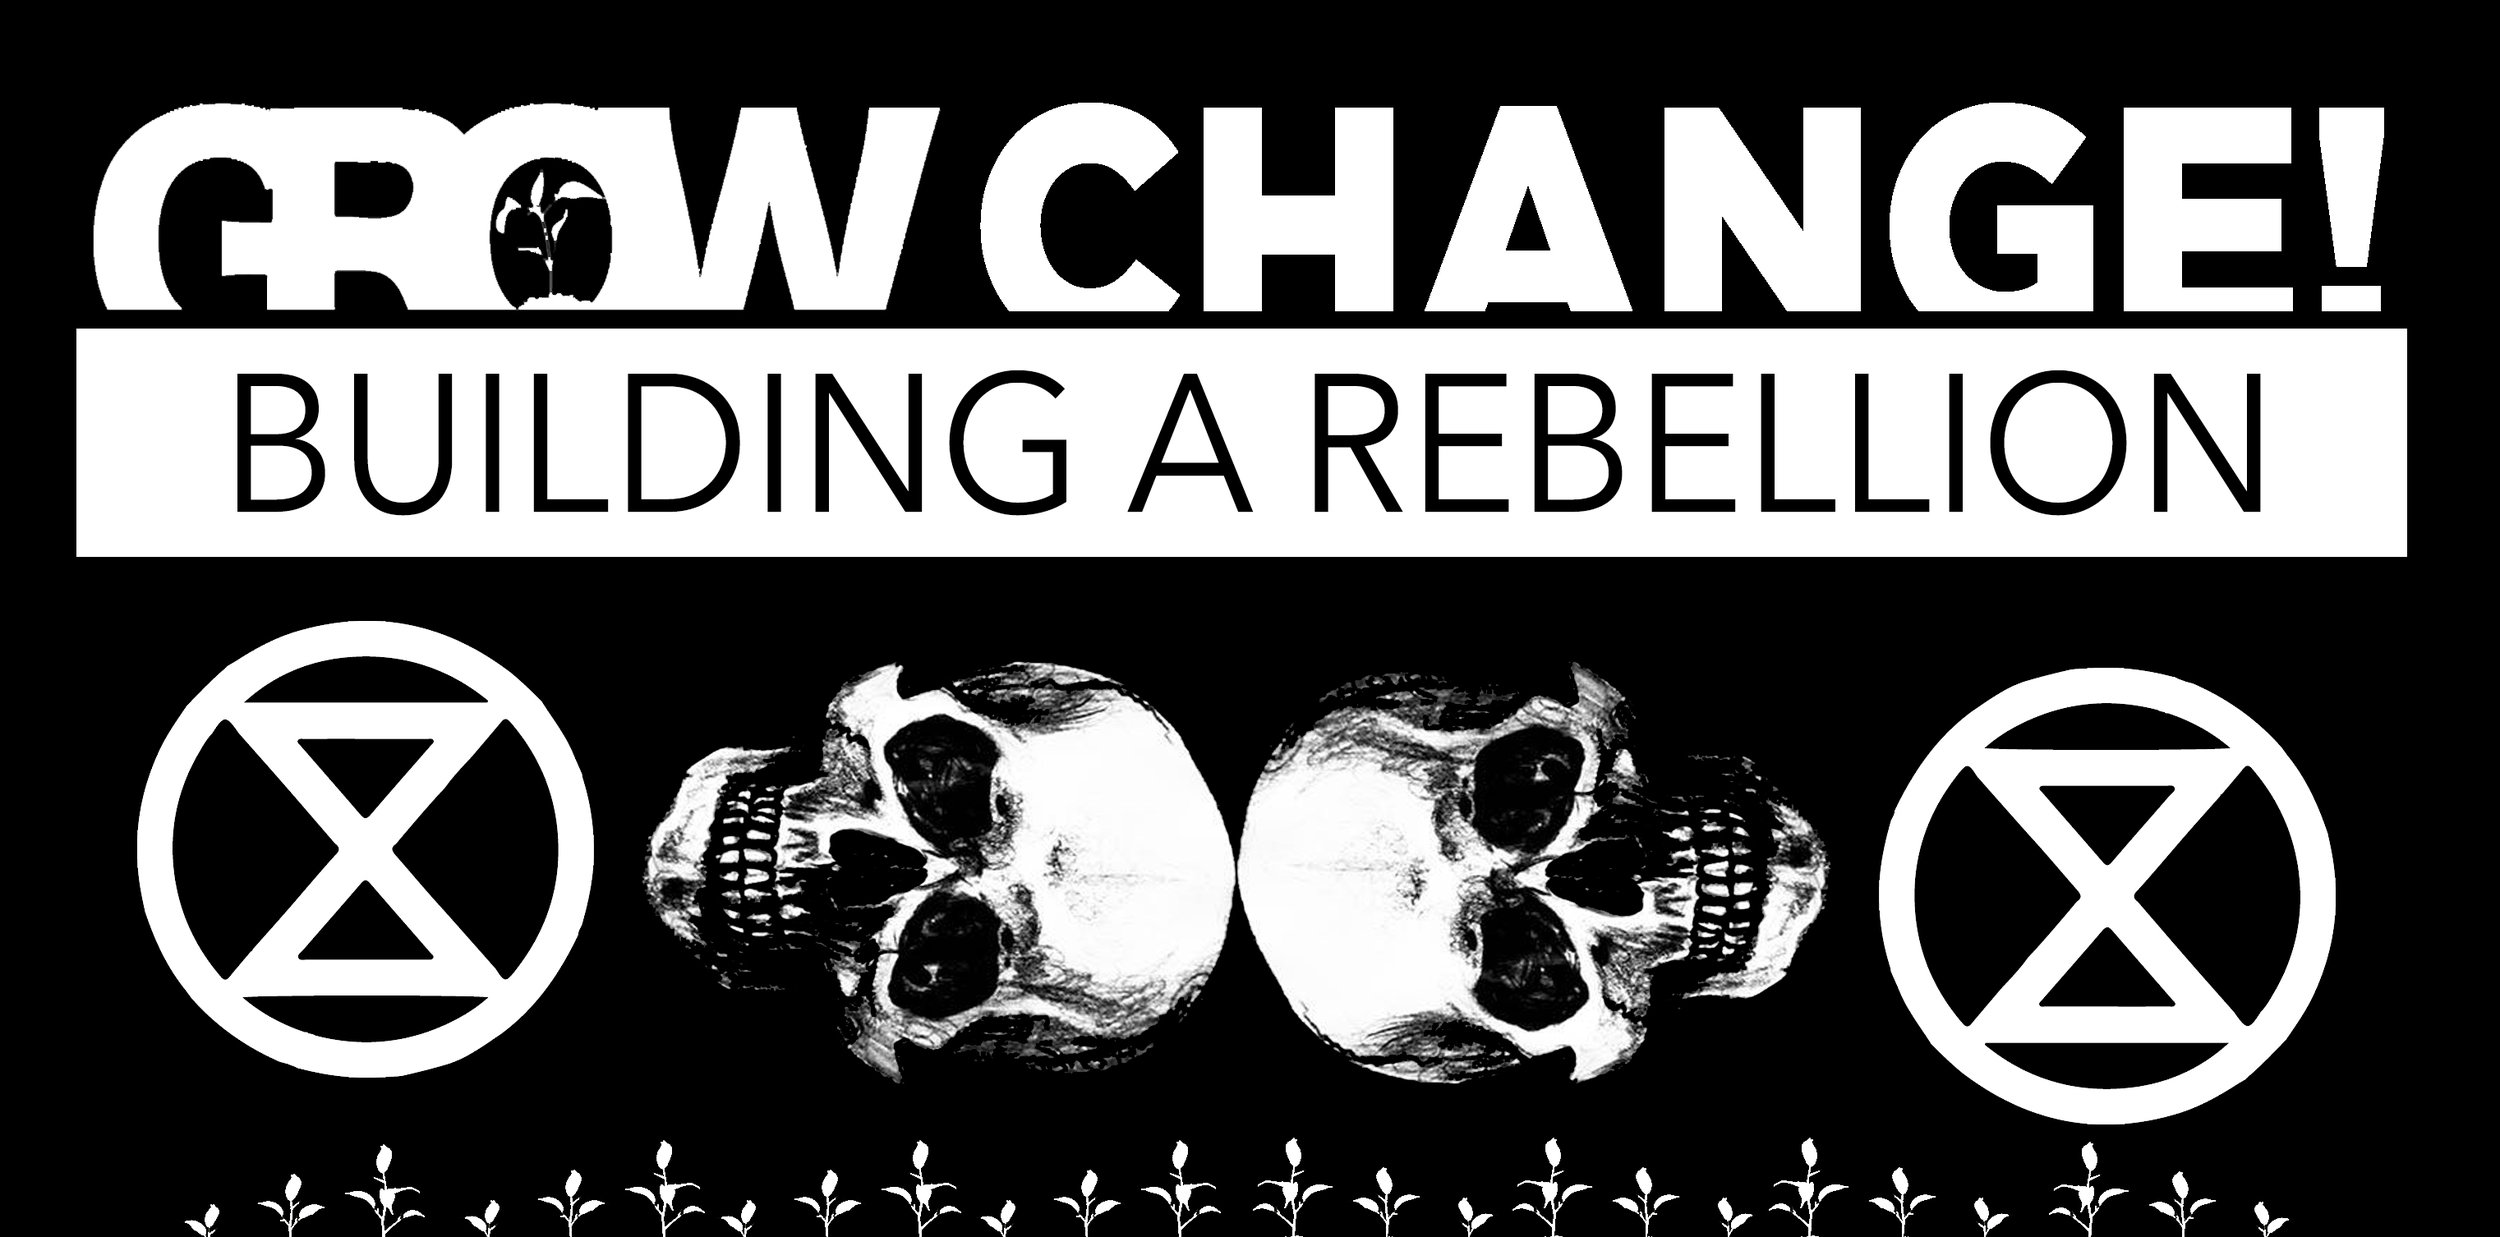 Climate action - building a rebellion